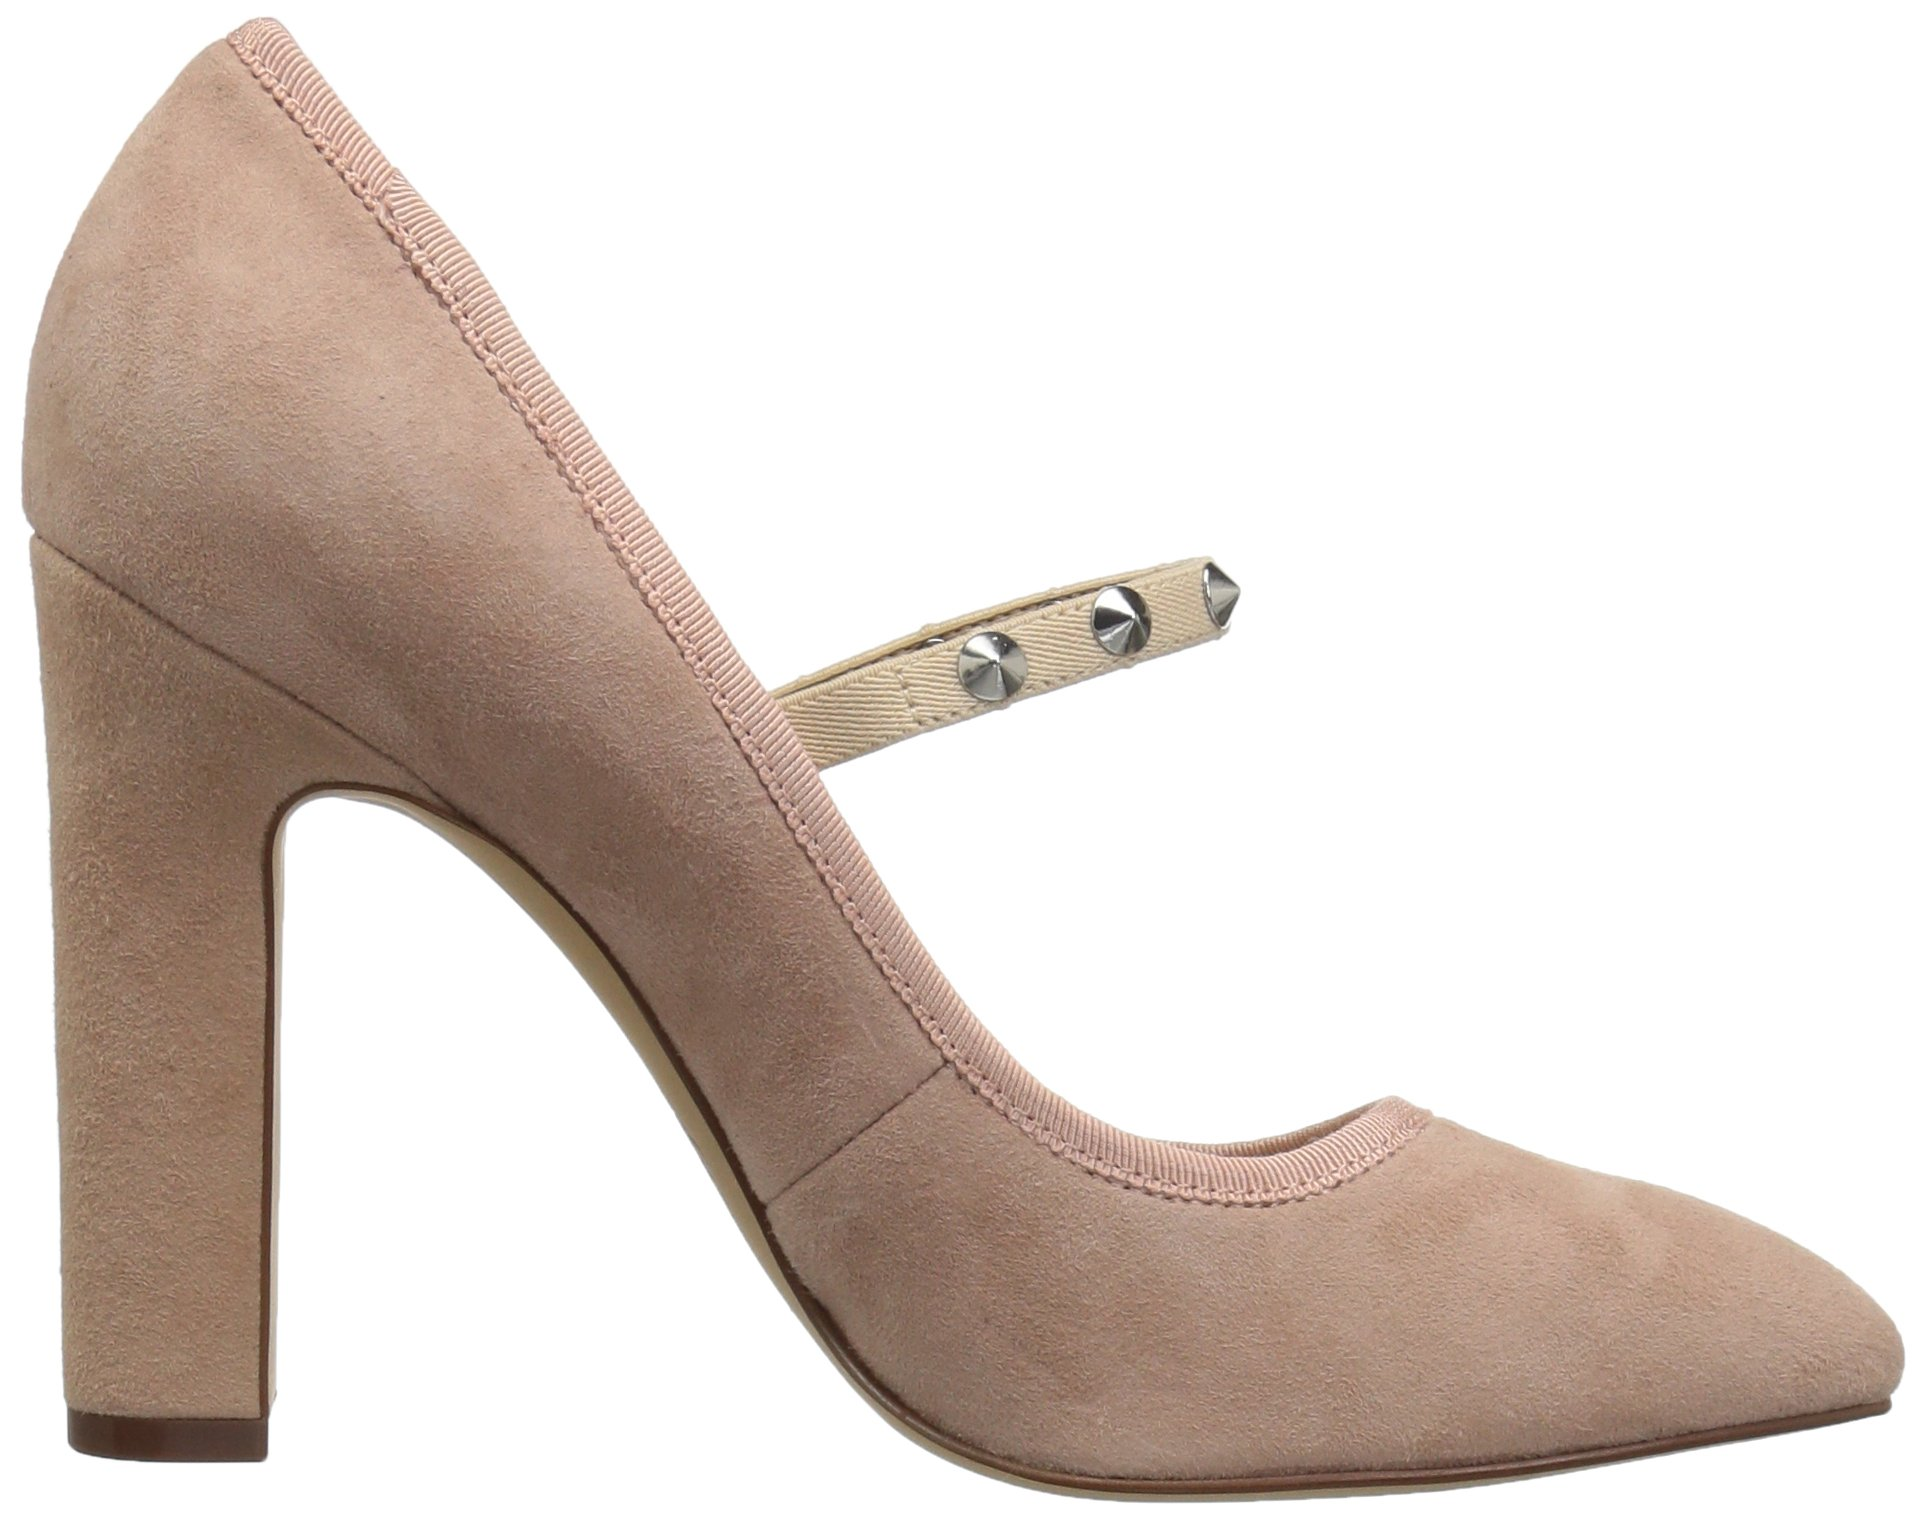 The Fix Women's Shay Studded Mary Jane Dress Pump, Petal Blush, 10 M US by The Fix (Image #7)